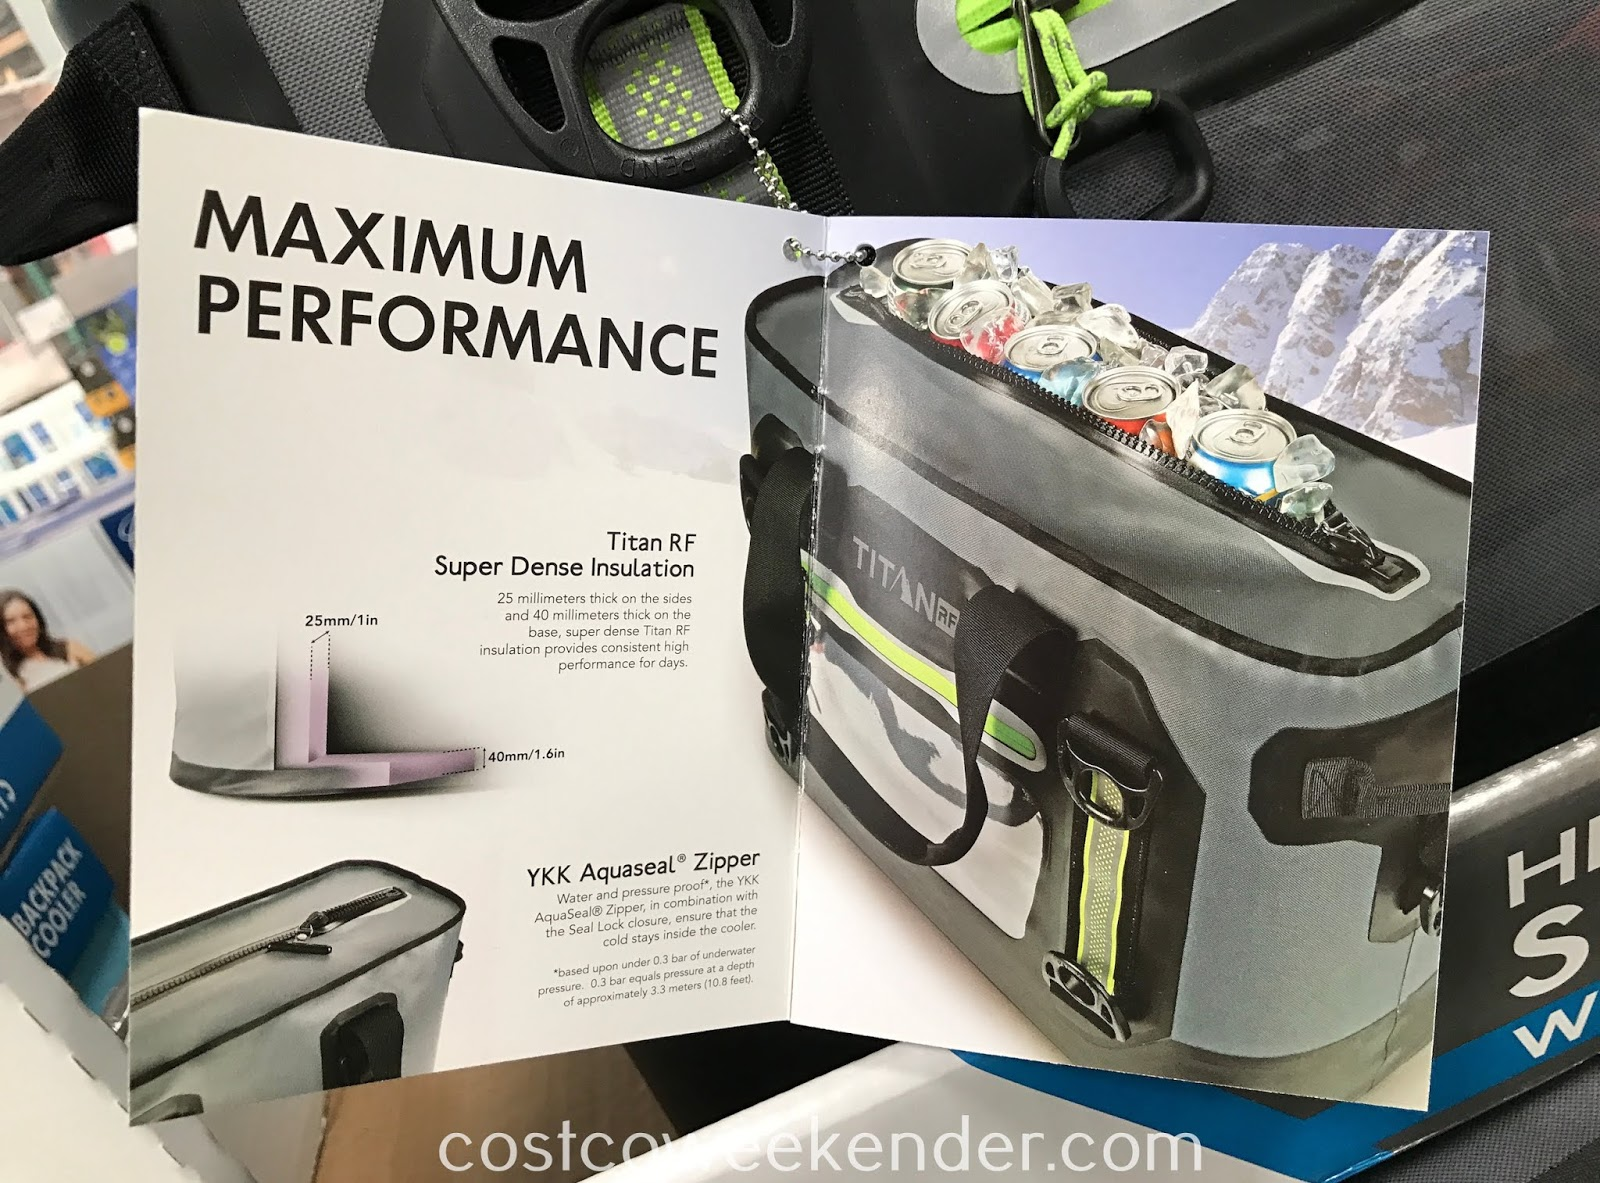 Titan RF Heavy Duty Super Cooler: great for picnics, camping, tailgating, the beach, etc